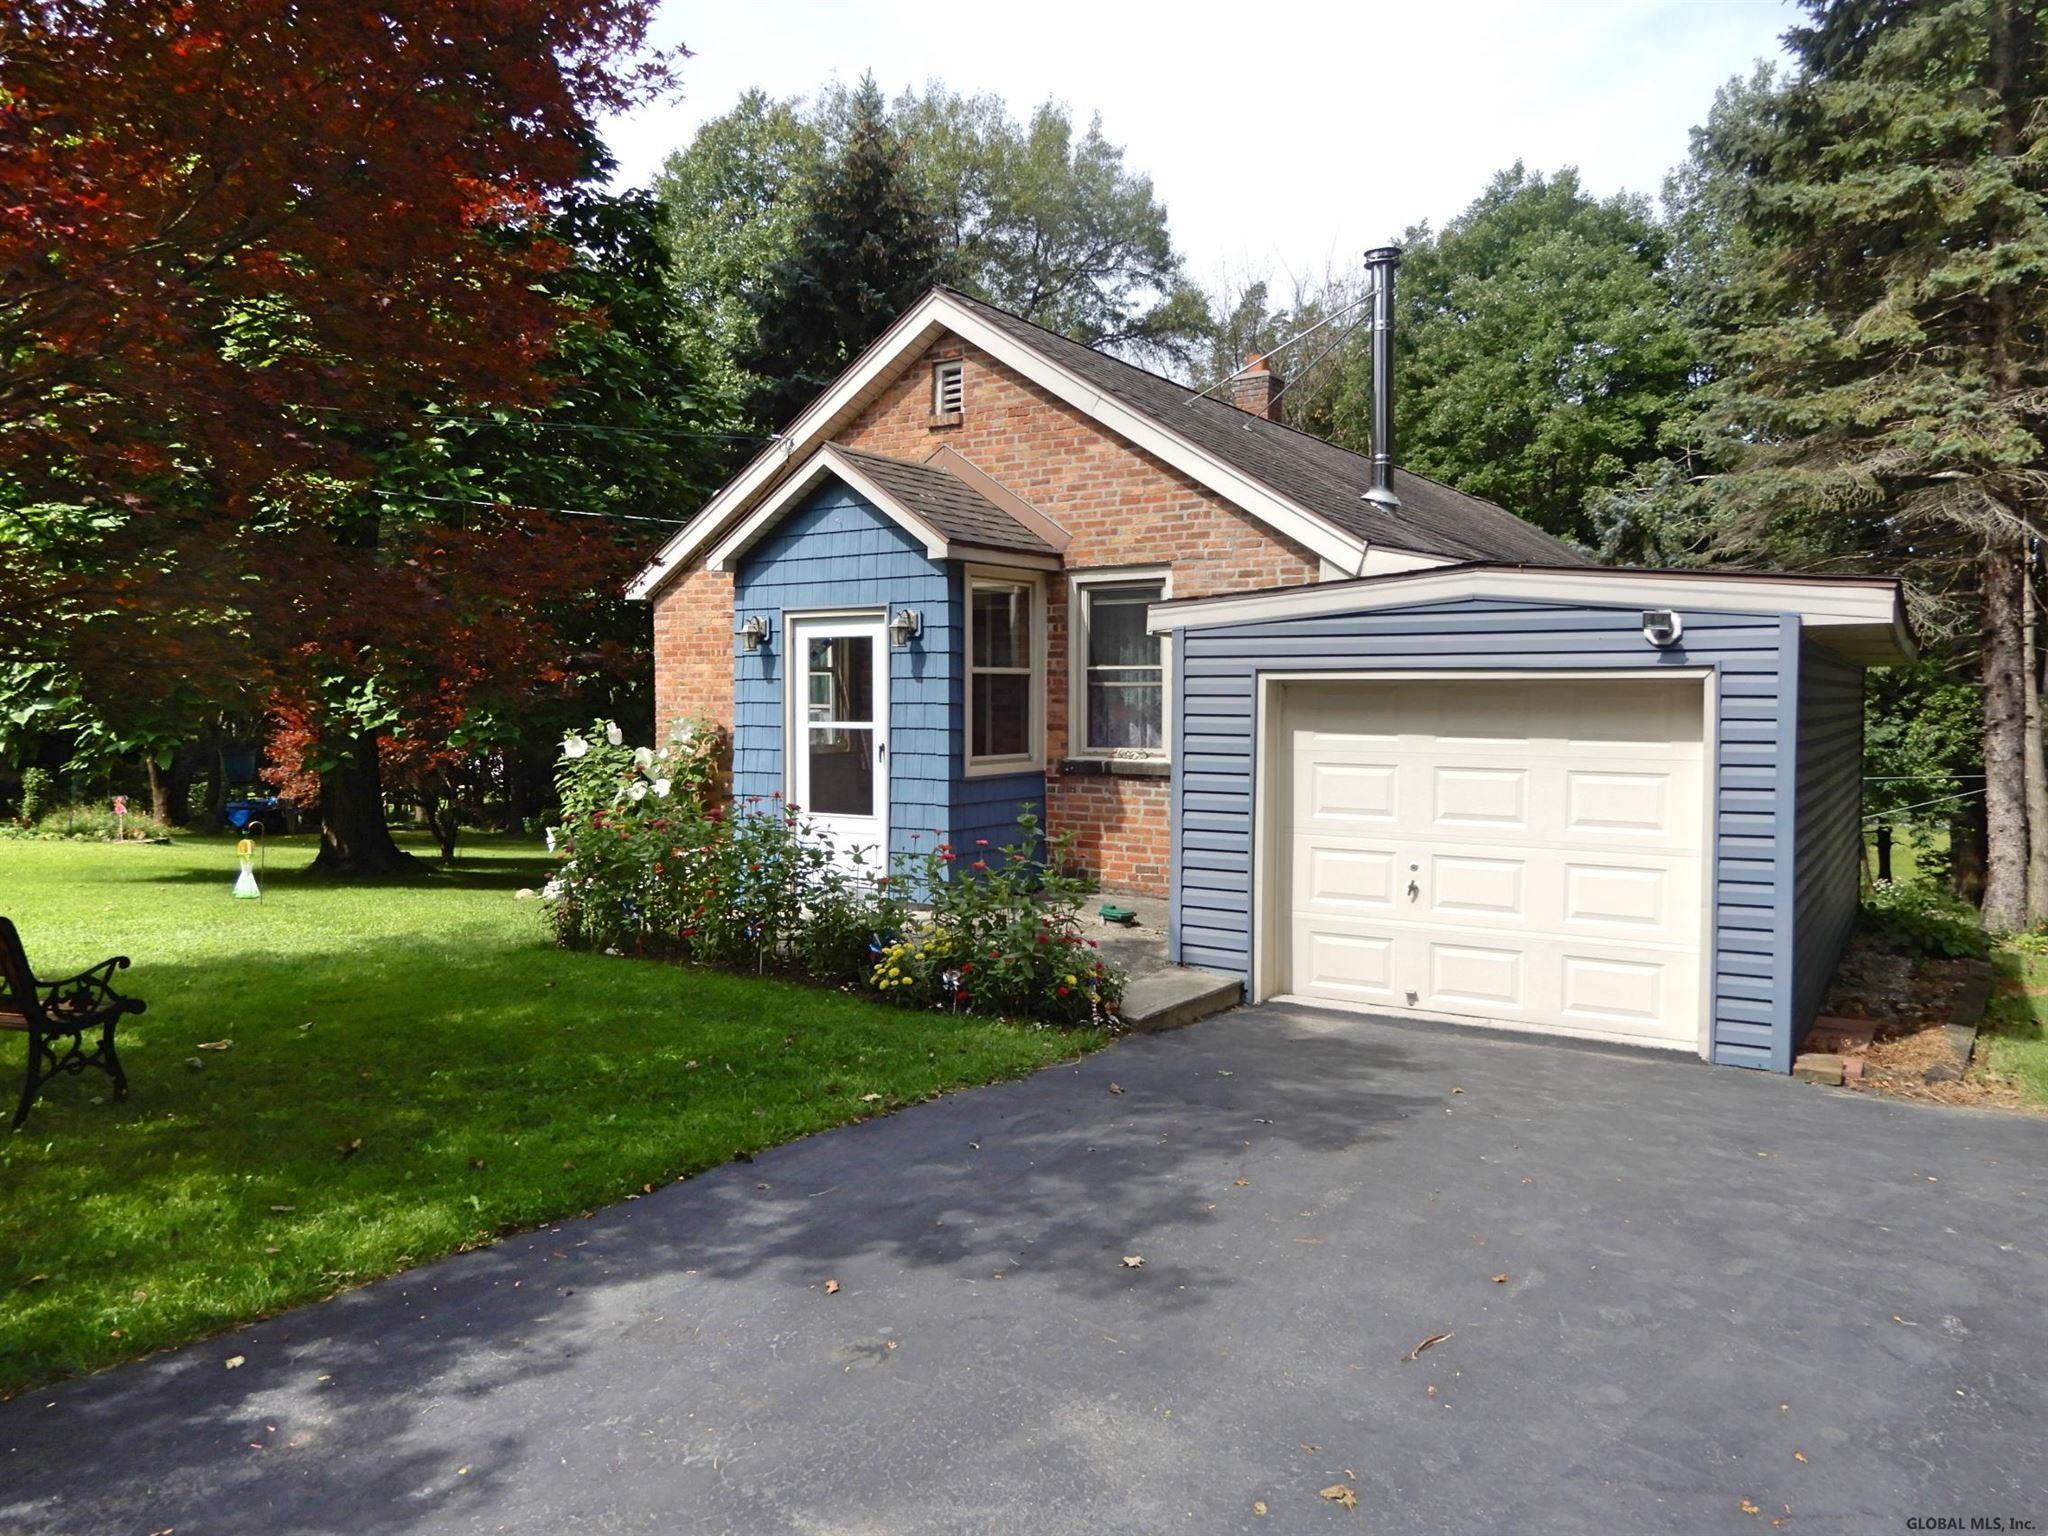 Featured: 71 Bleakley Ave – Brunswick, NY